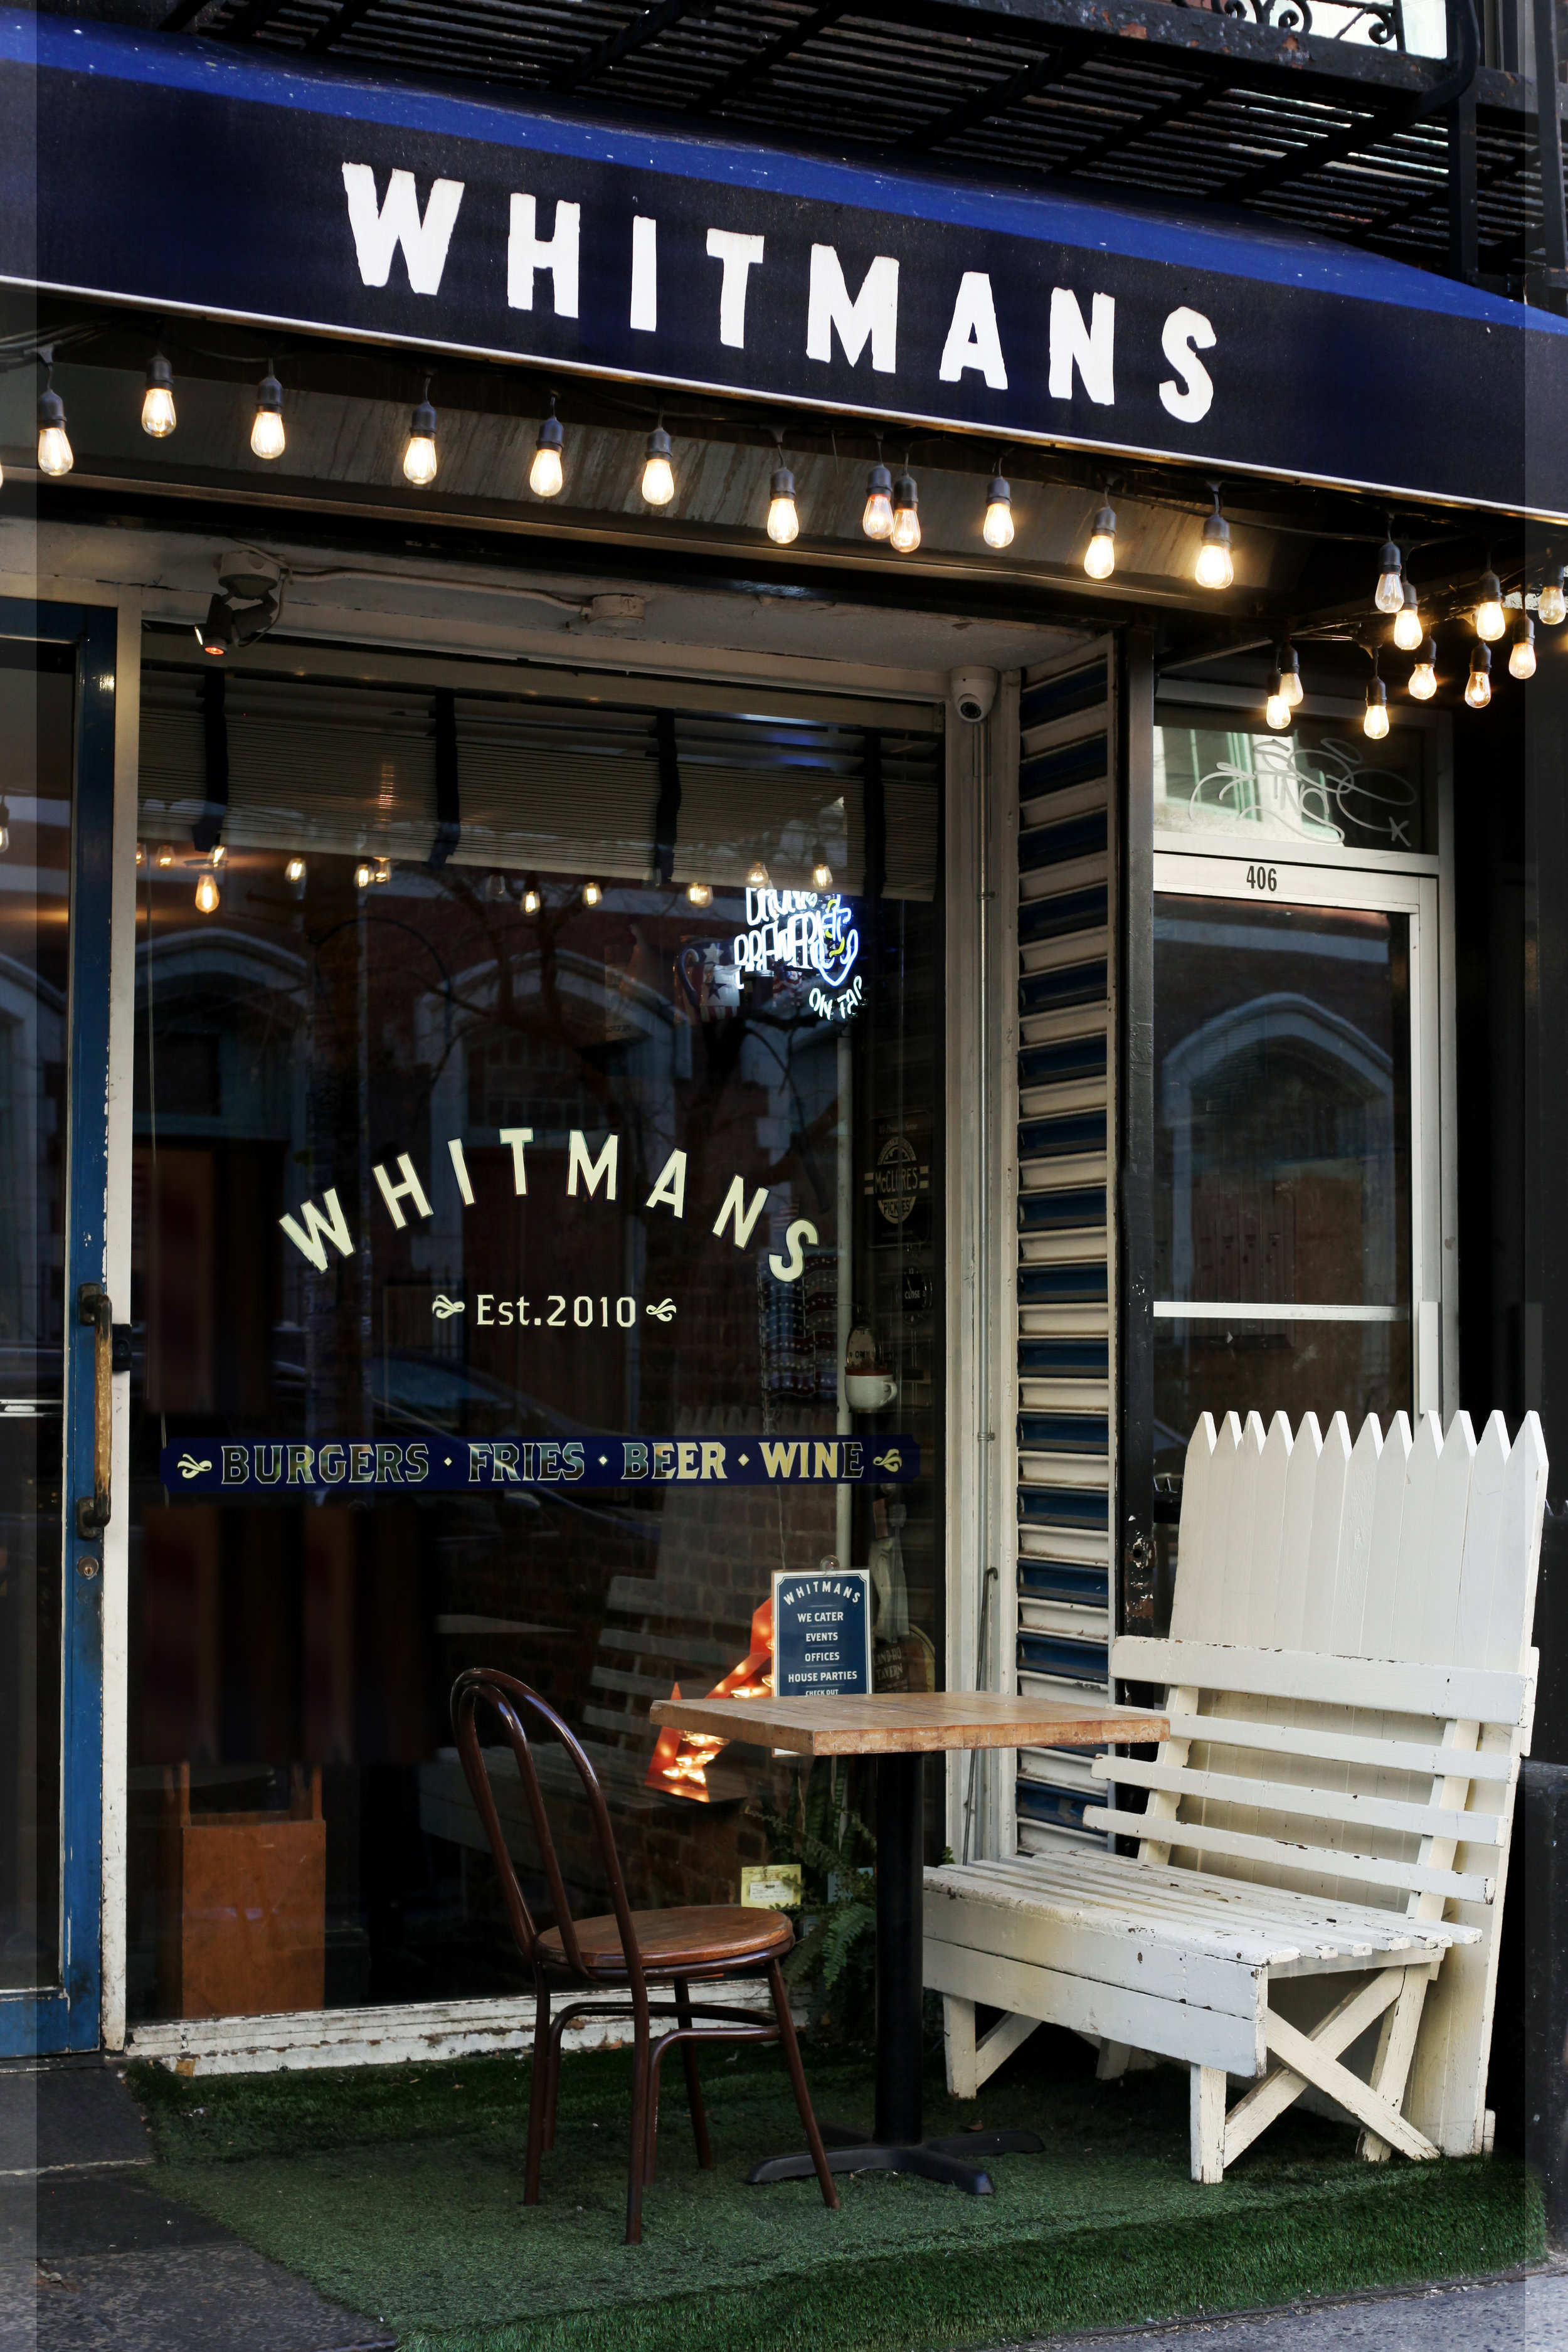 Whitmans by LO Winter 1718-100a.jpg